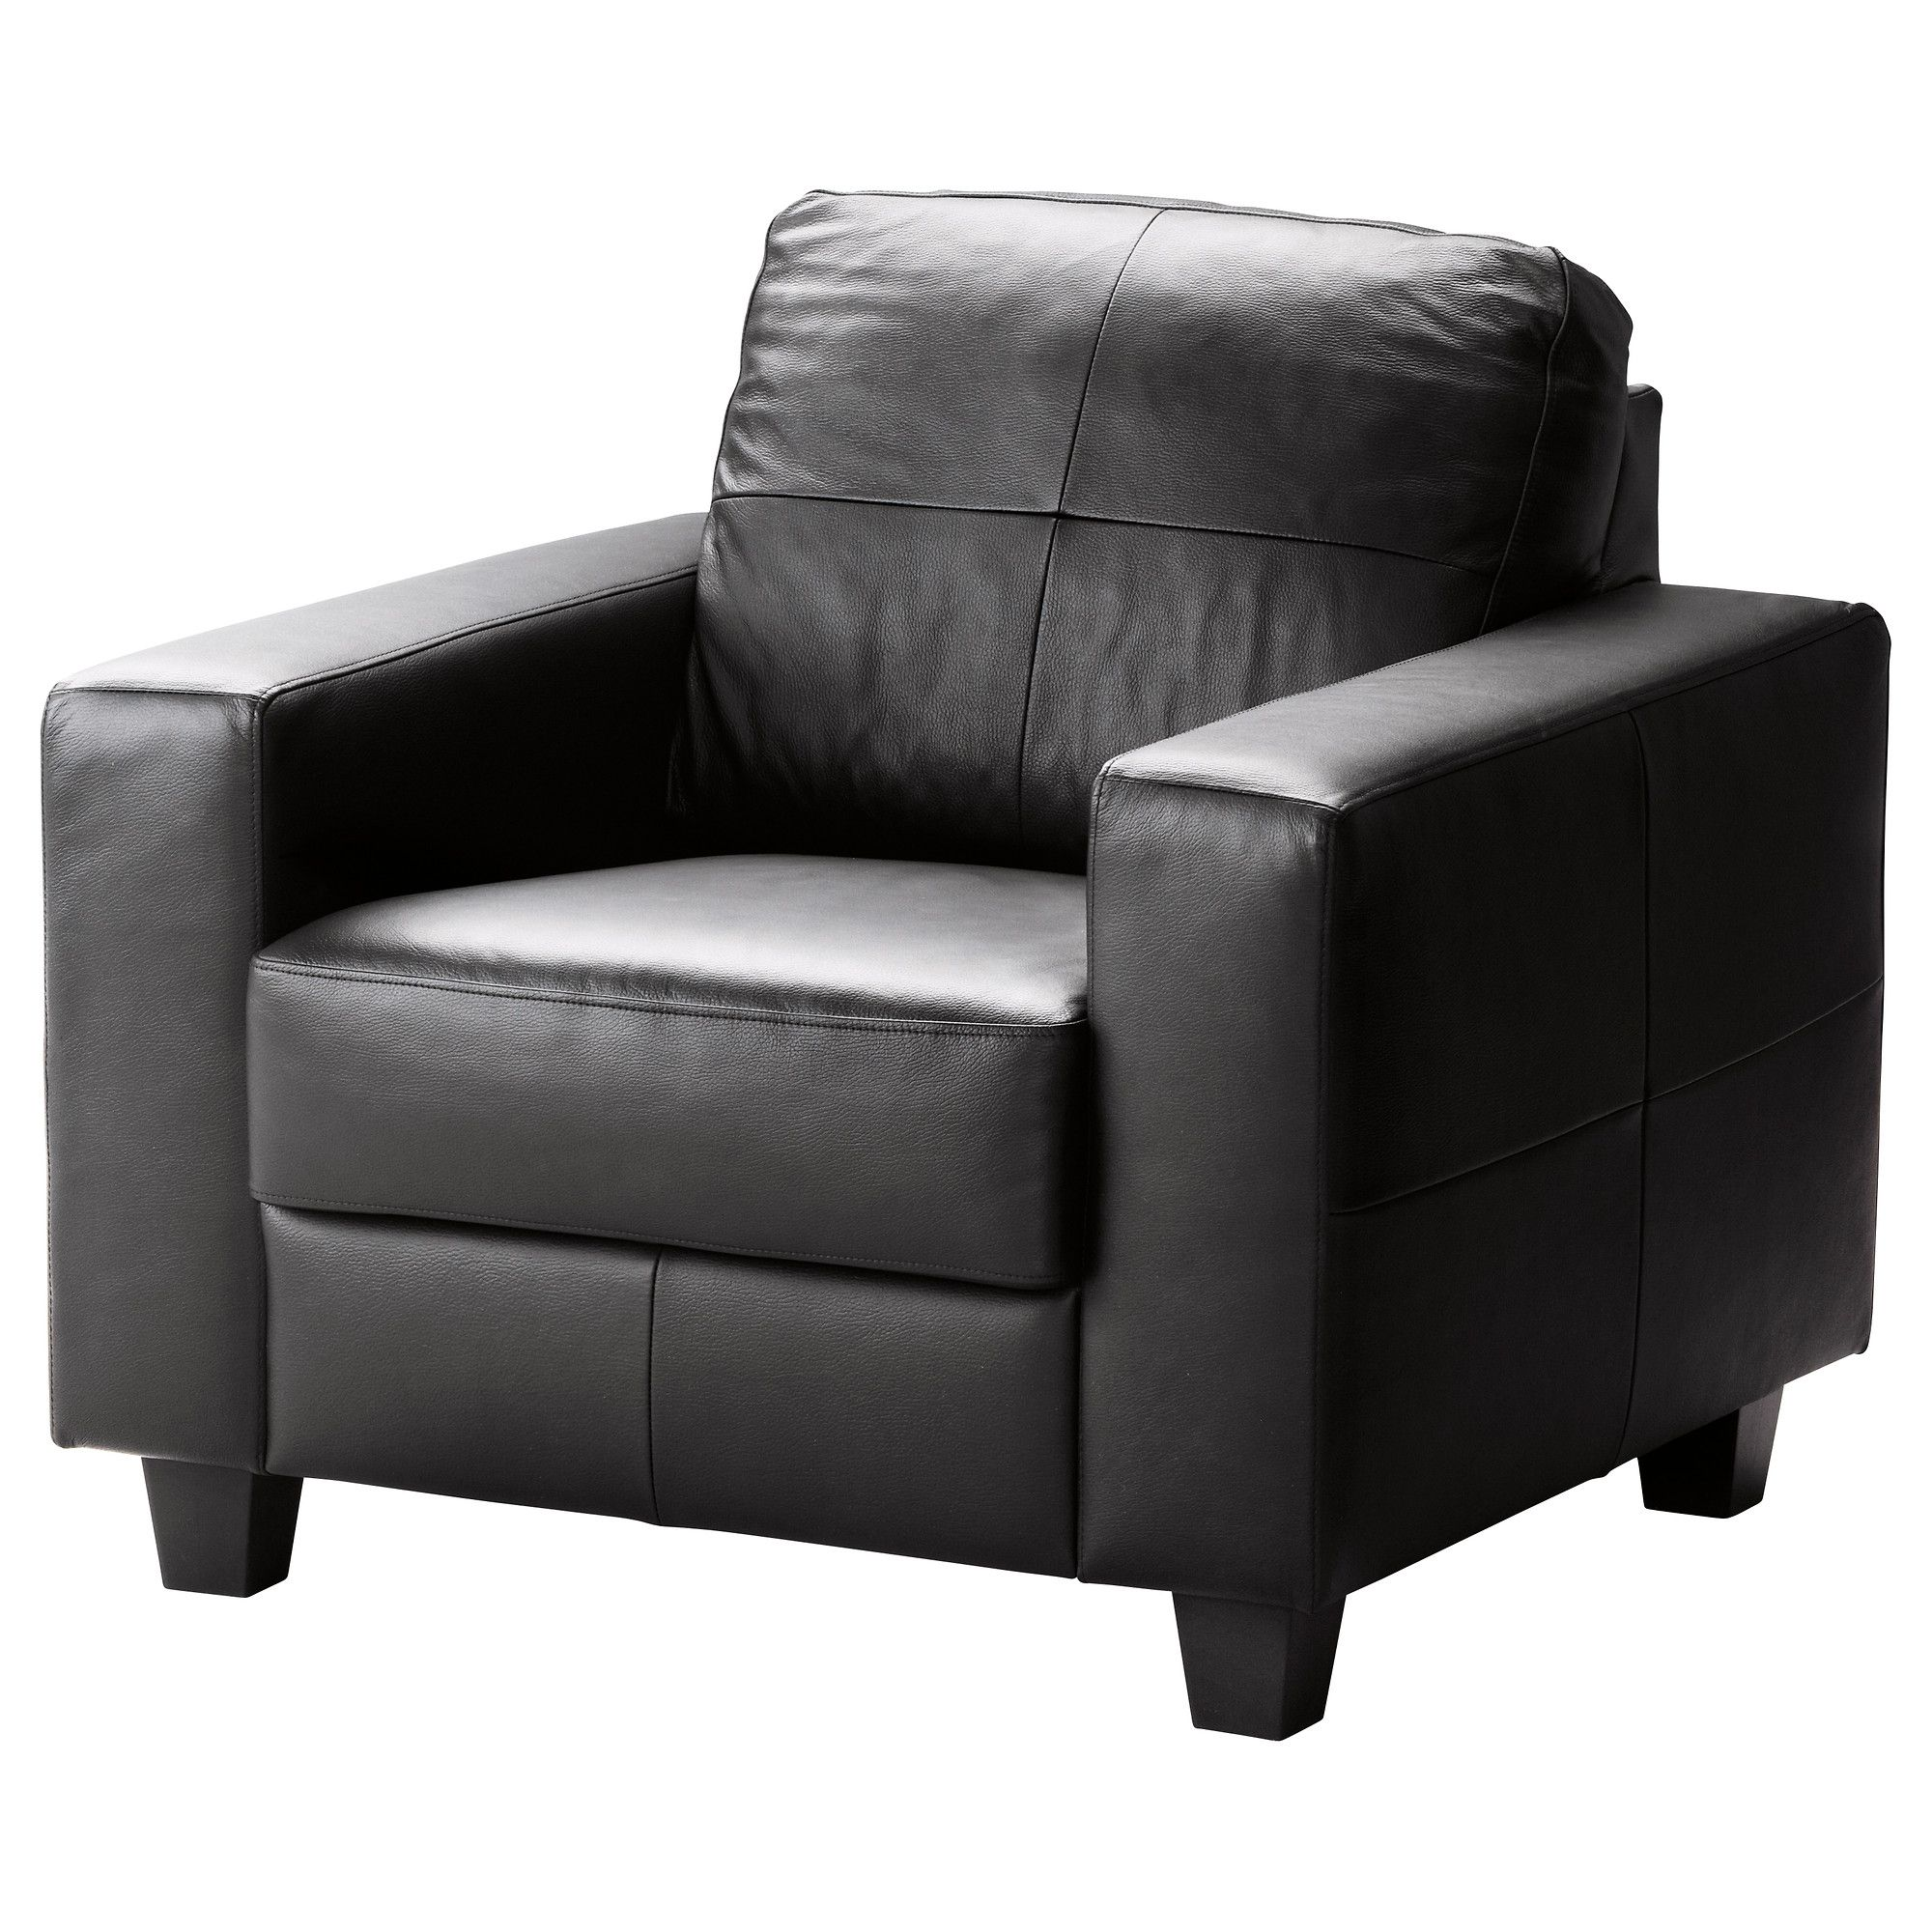 man chair wish it was brown skogaby chair ikea living room pinterest armchairs. Black Bedroom Furniture Sets. Home Design Ideas